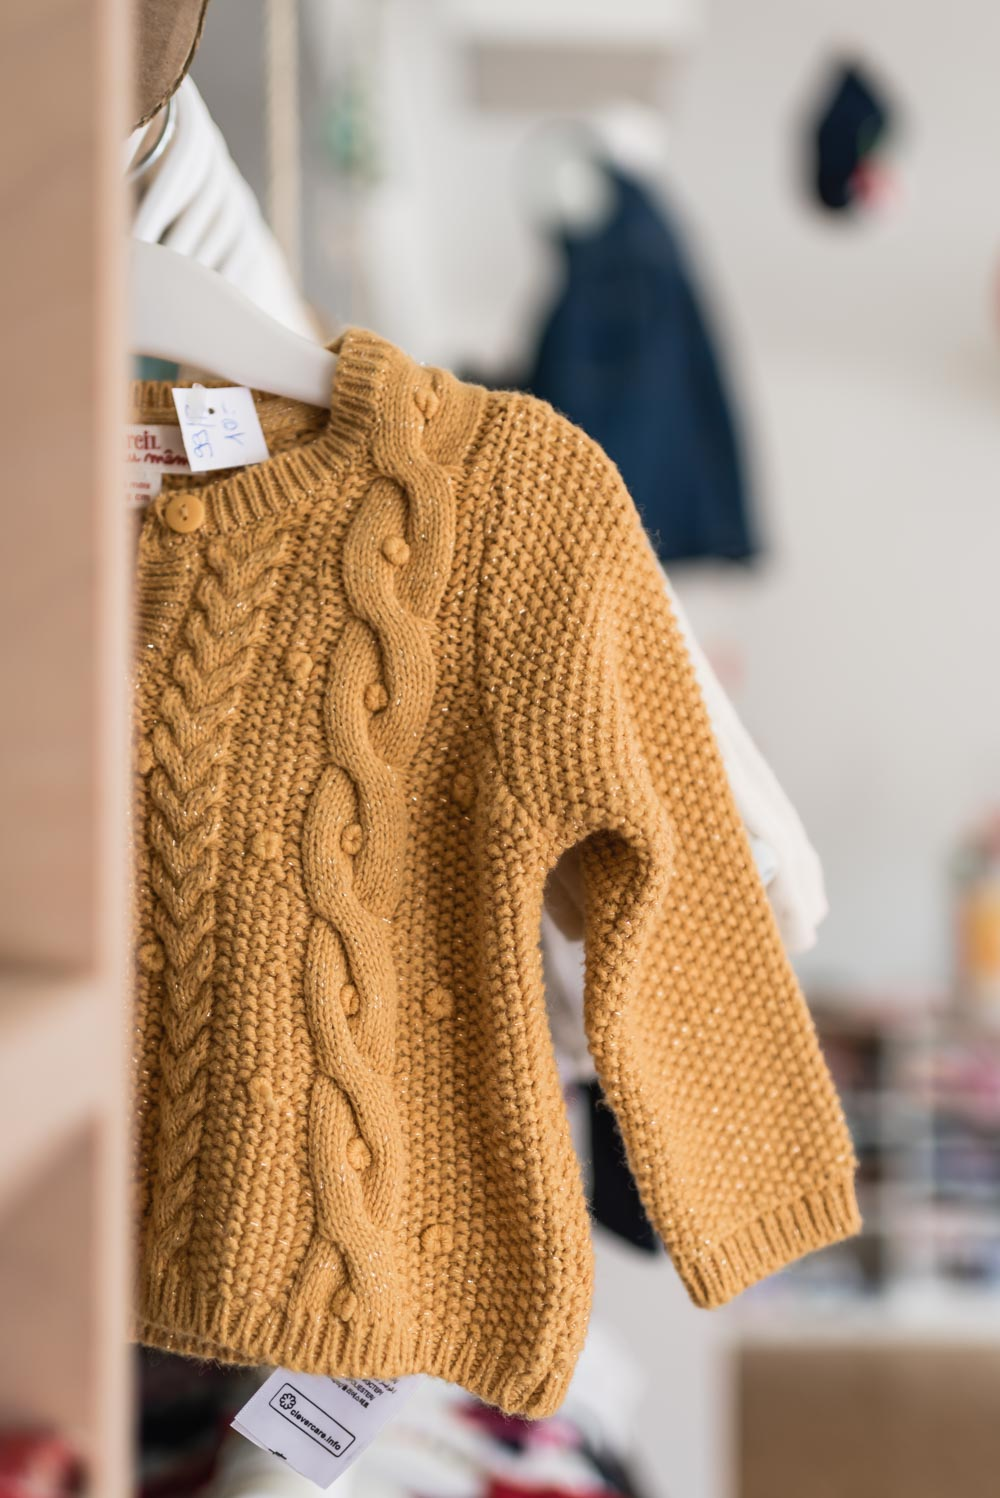 Secondhand Zürich: Die 5 coolsten Secondhand-Shops für Kinder in Zürich #secondhand #kindermode